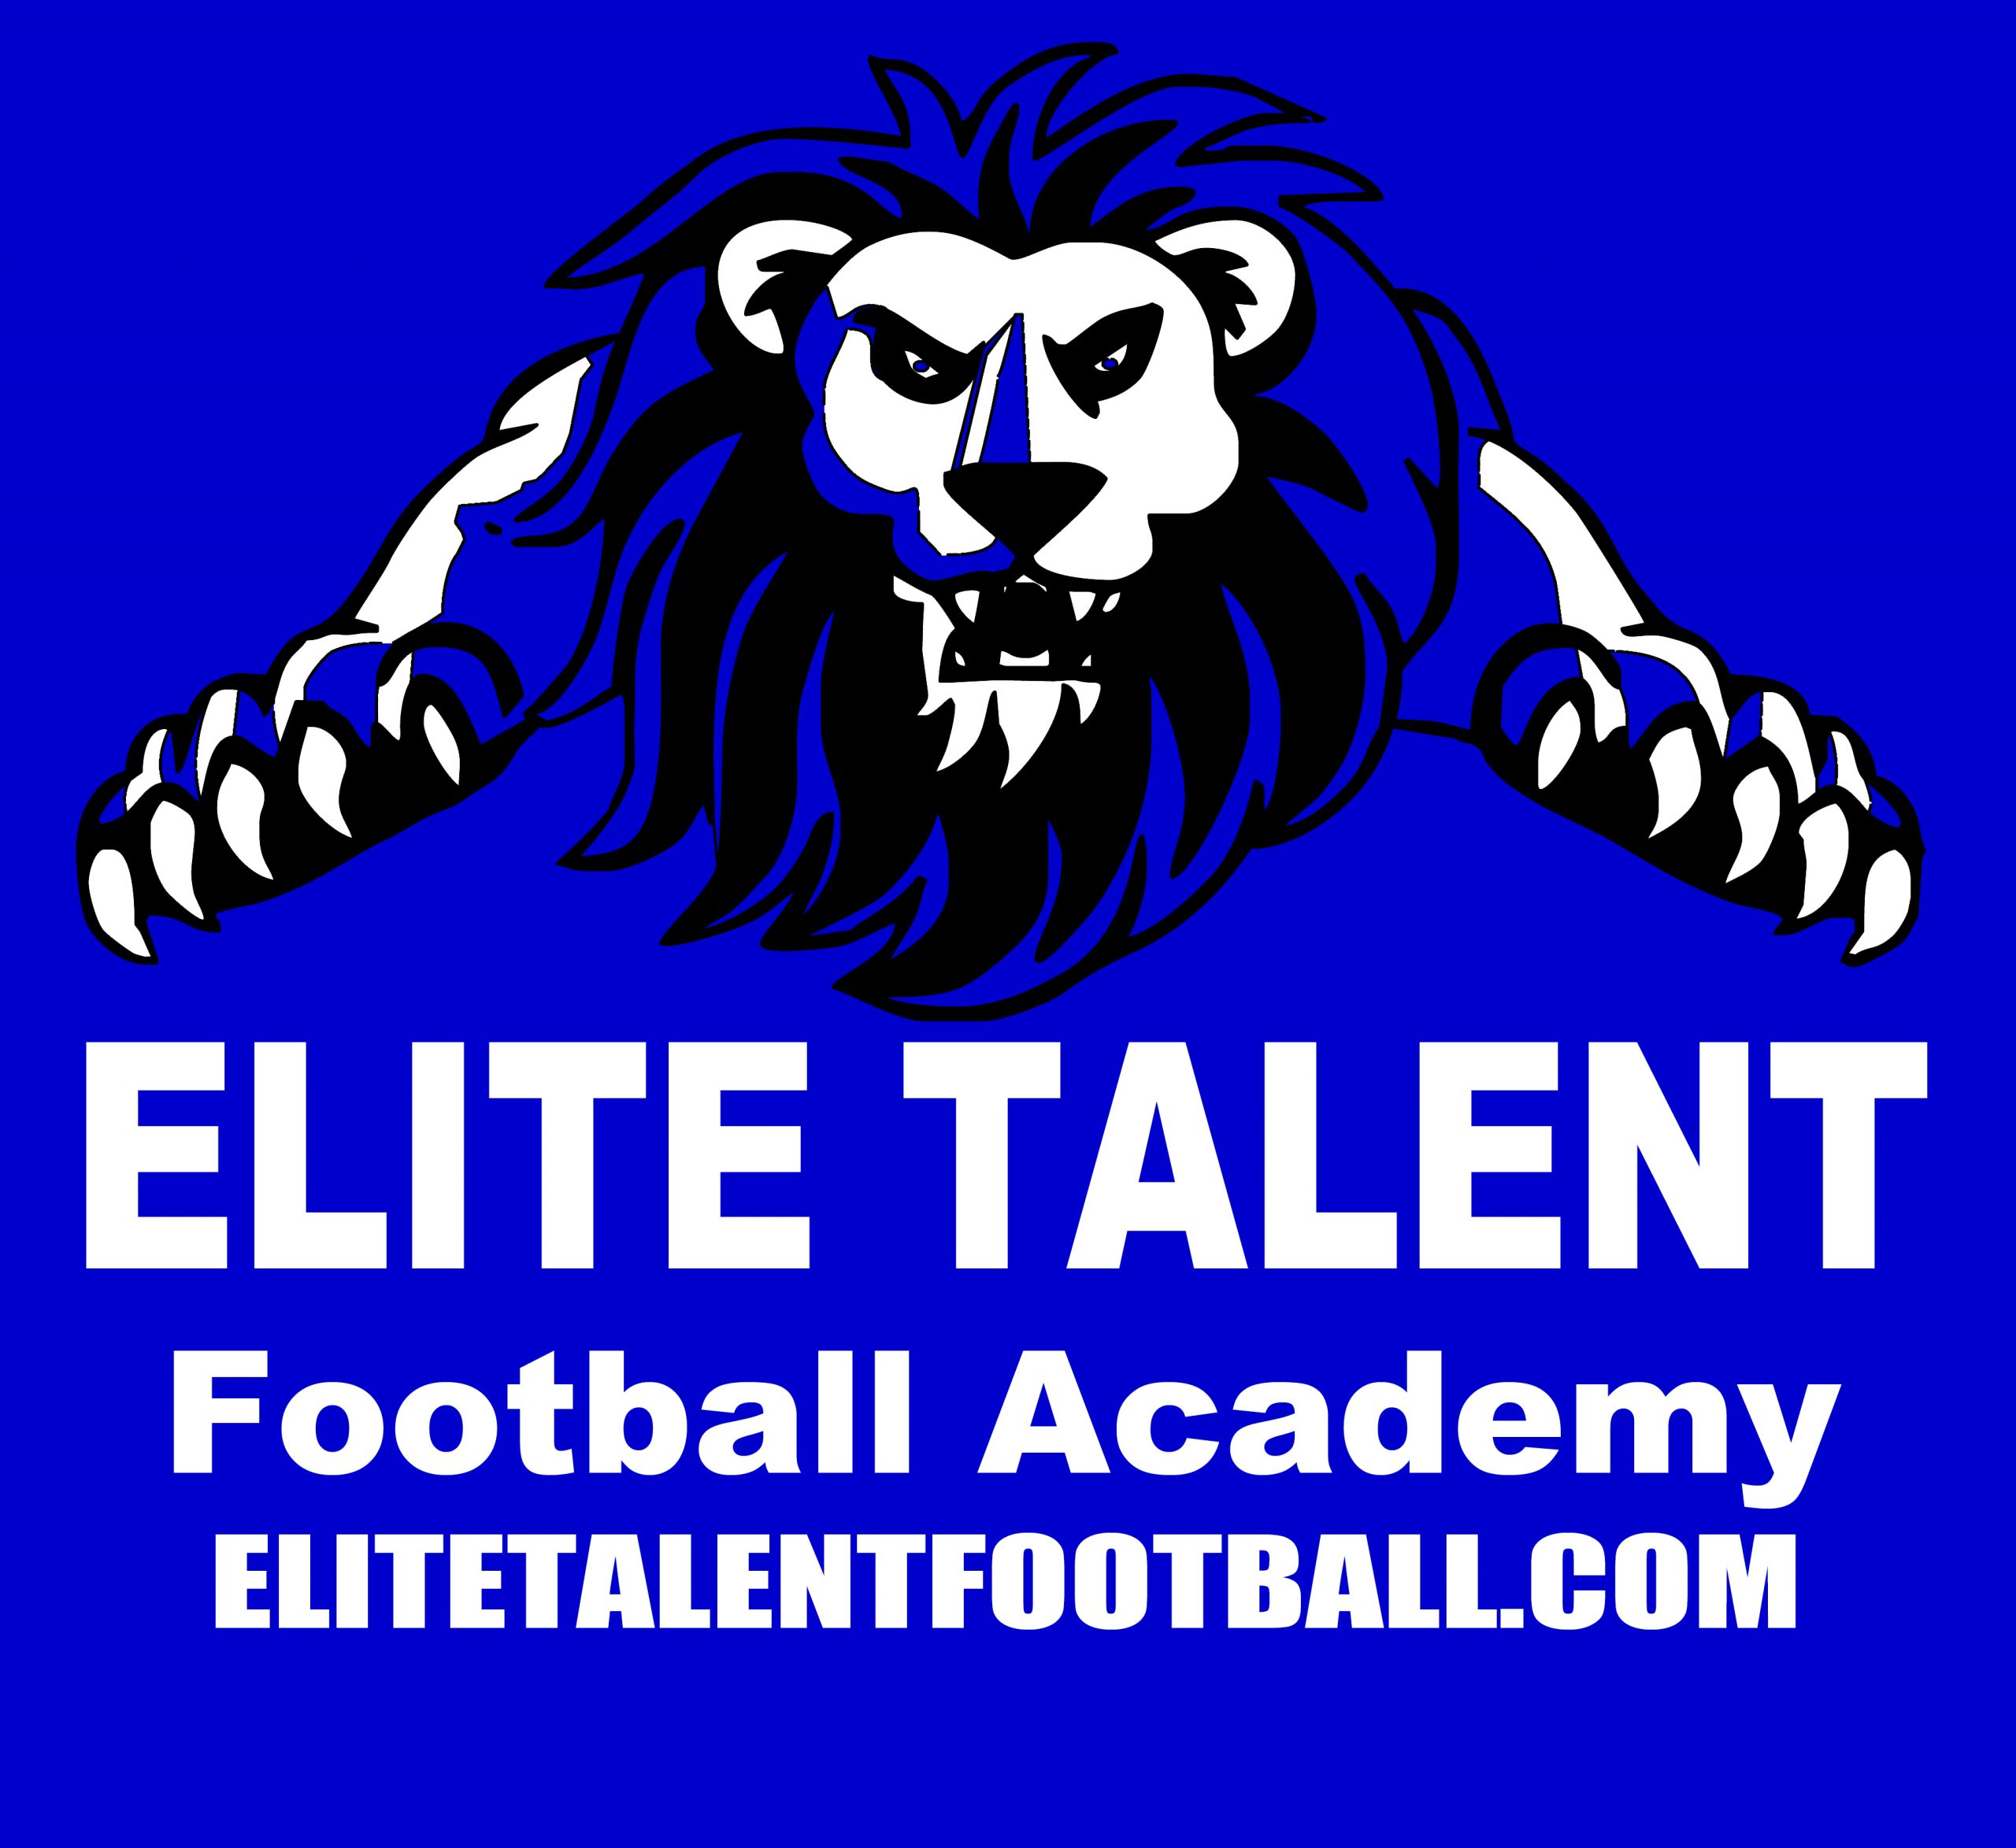 Elite Talent Football Academy Sponsors The Upcoming National College Evaluation Football Camp 1